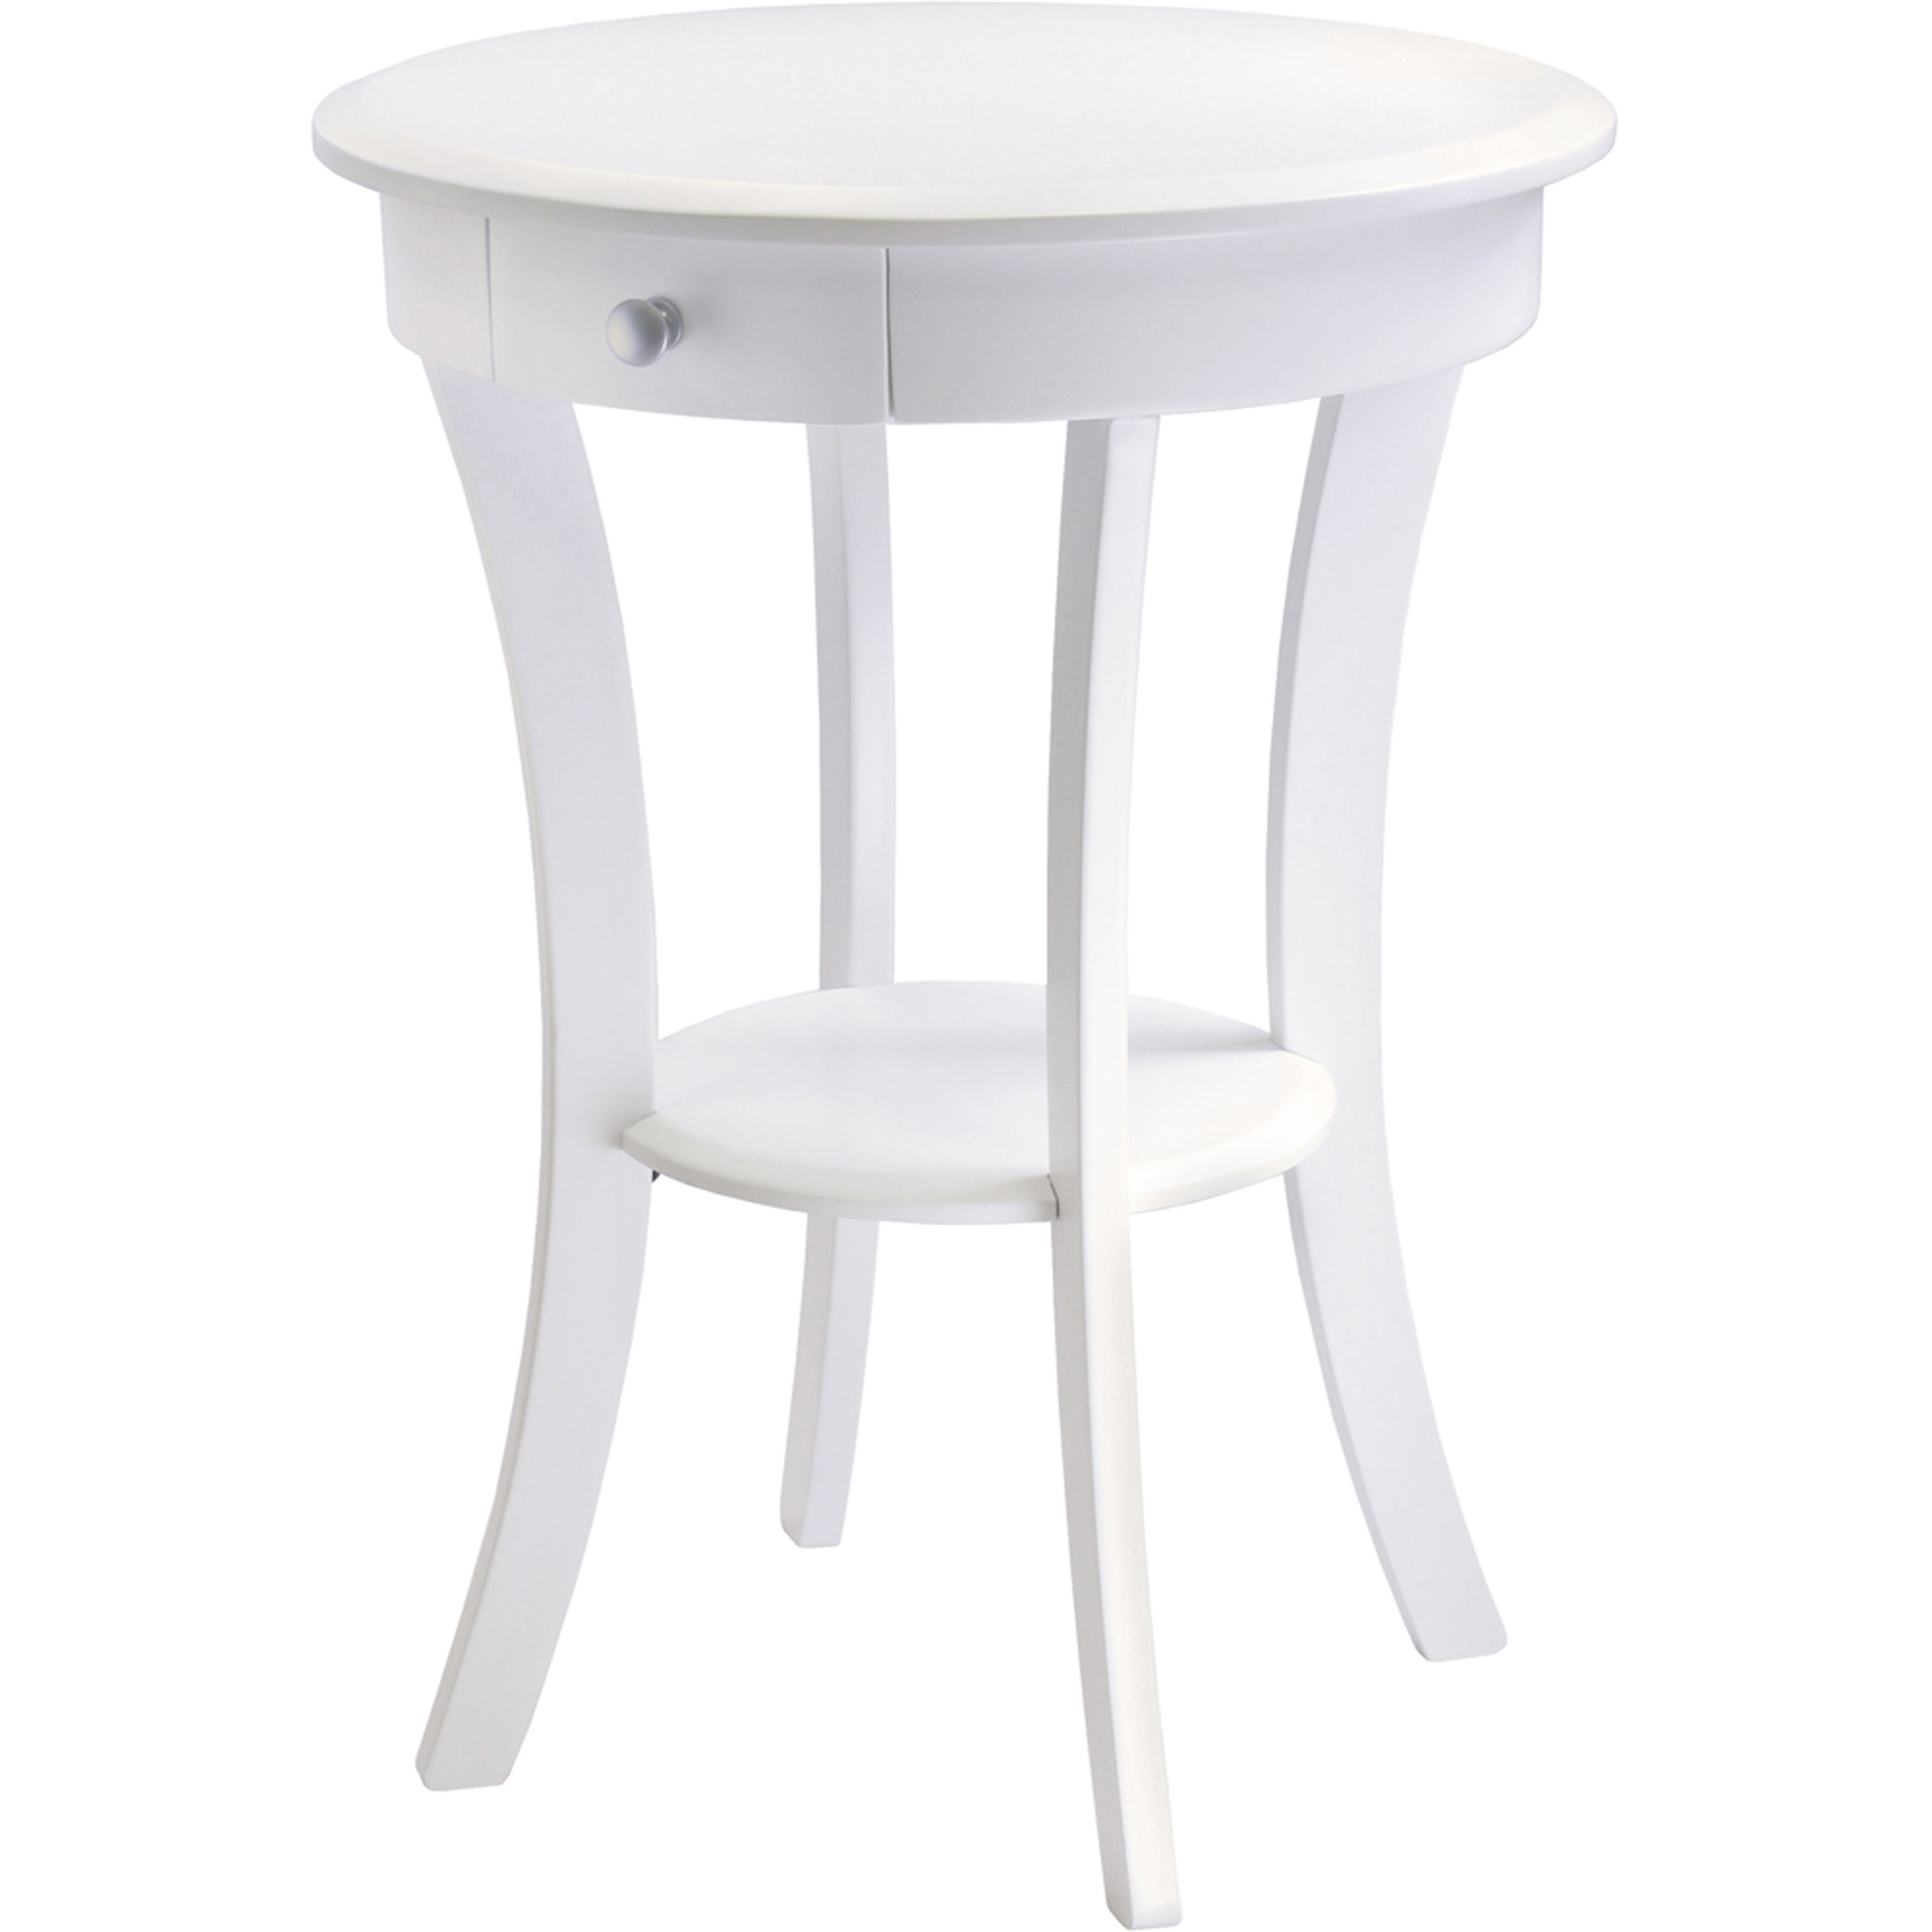 sasha round accent table white rustic and oak bedside small battery operated lamps patio bar cover narrow coffee beach fall placemats napkins mirrored couch decorative trendy